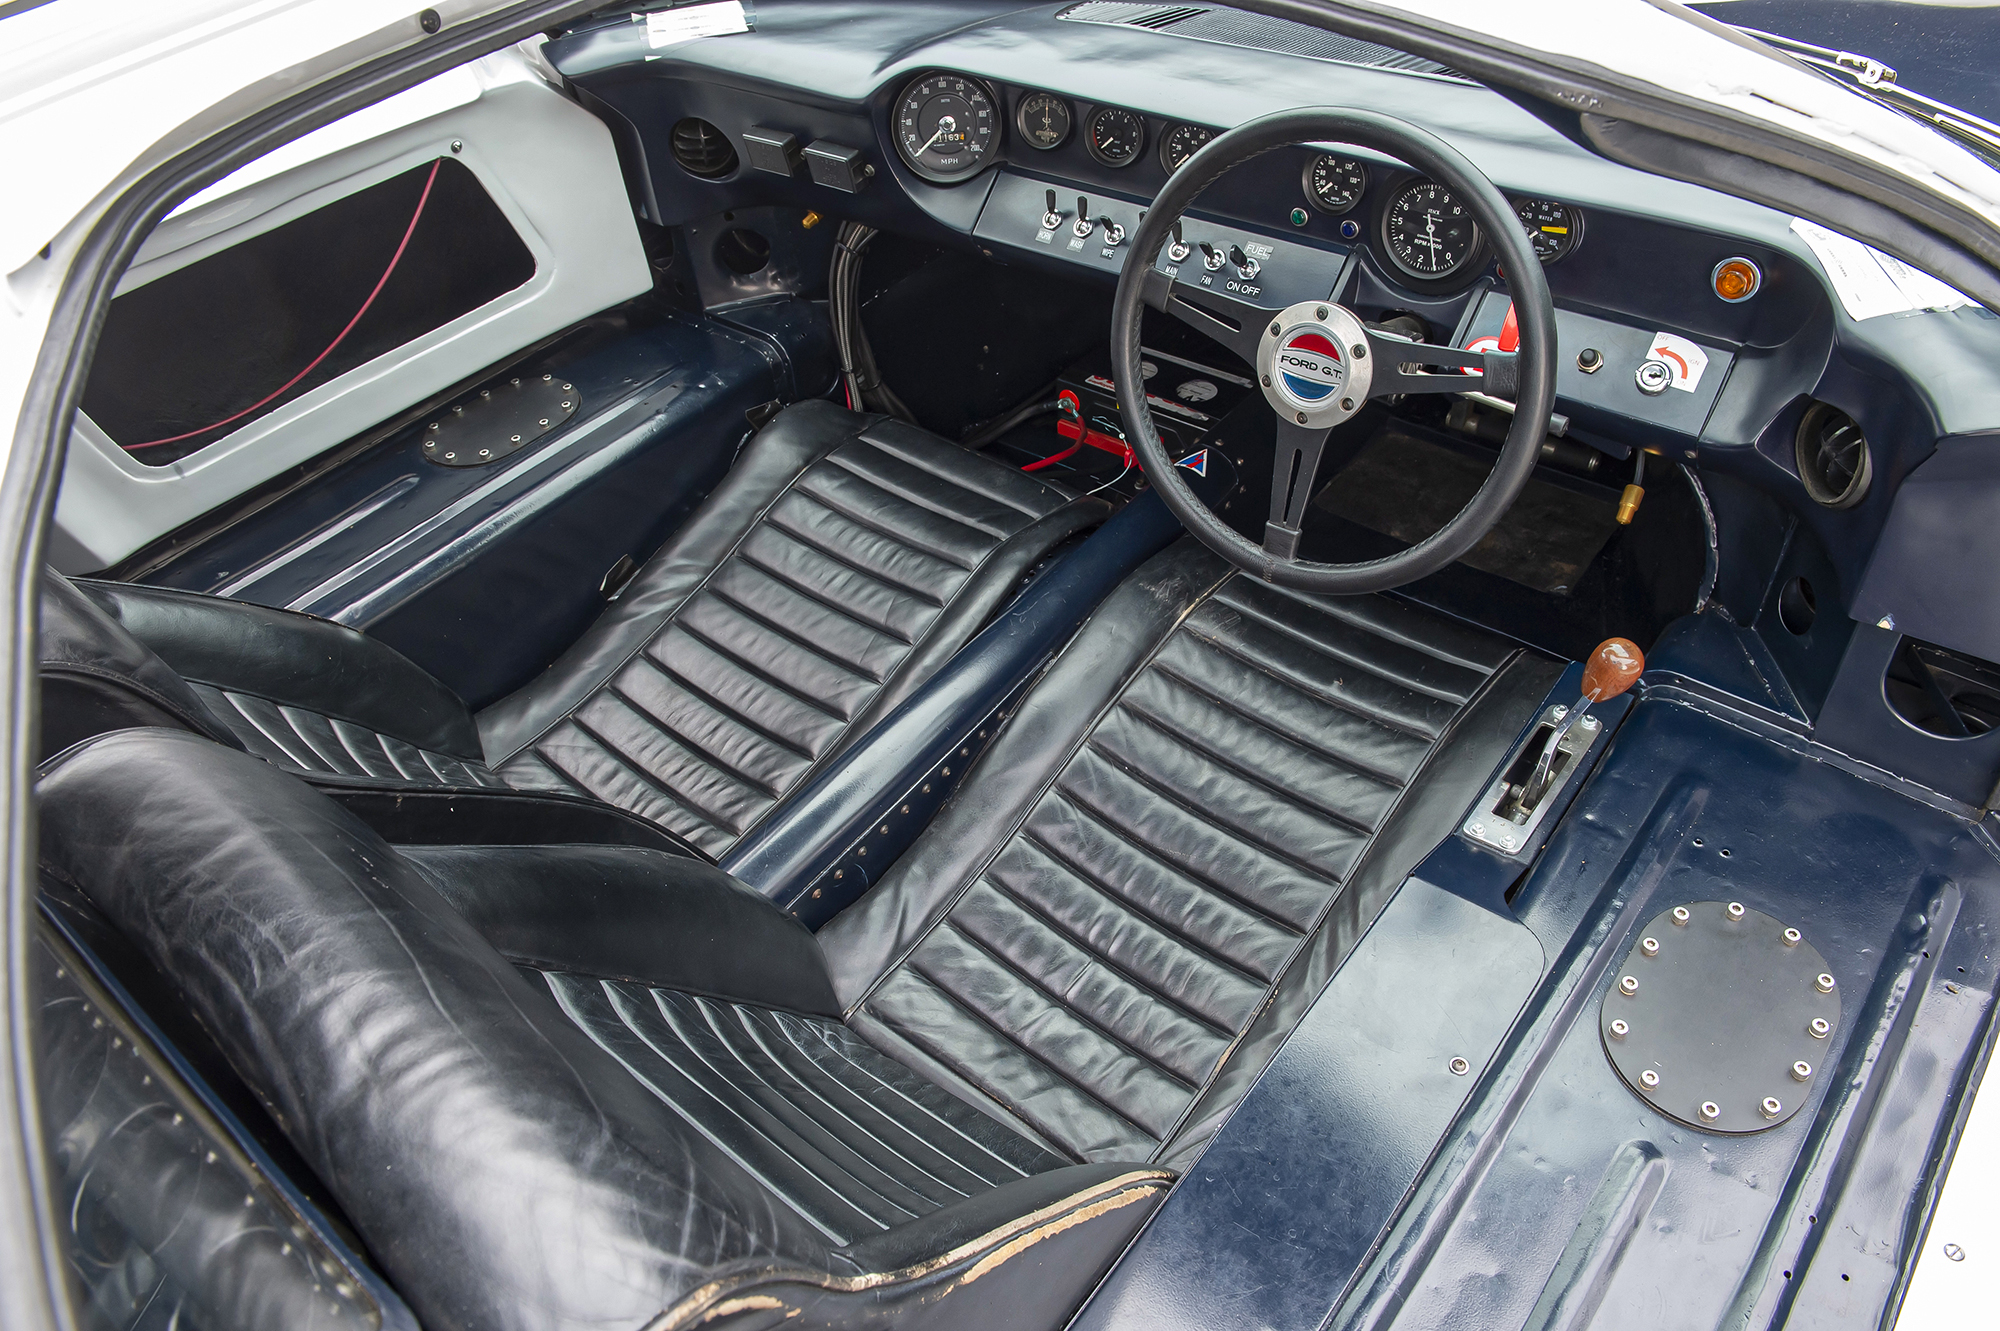 1964 Ford GT40 Prototype GT/105 interior